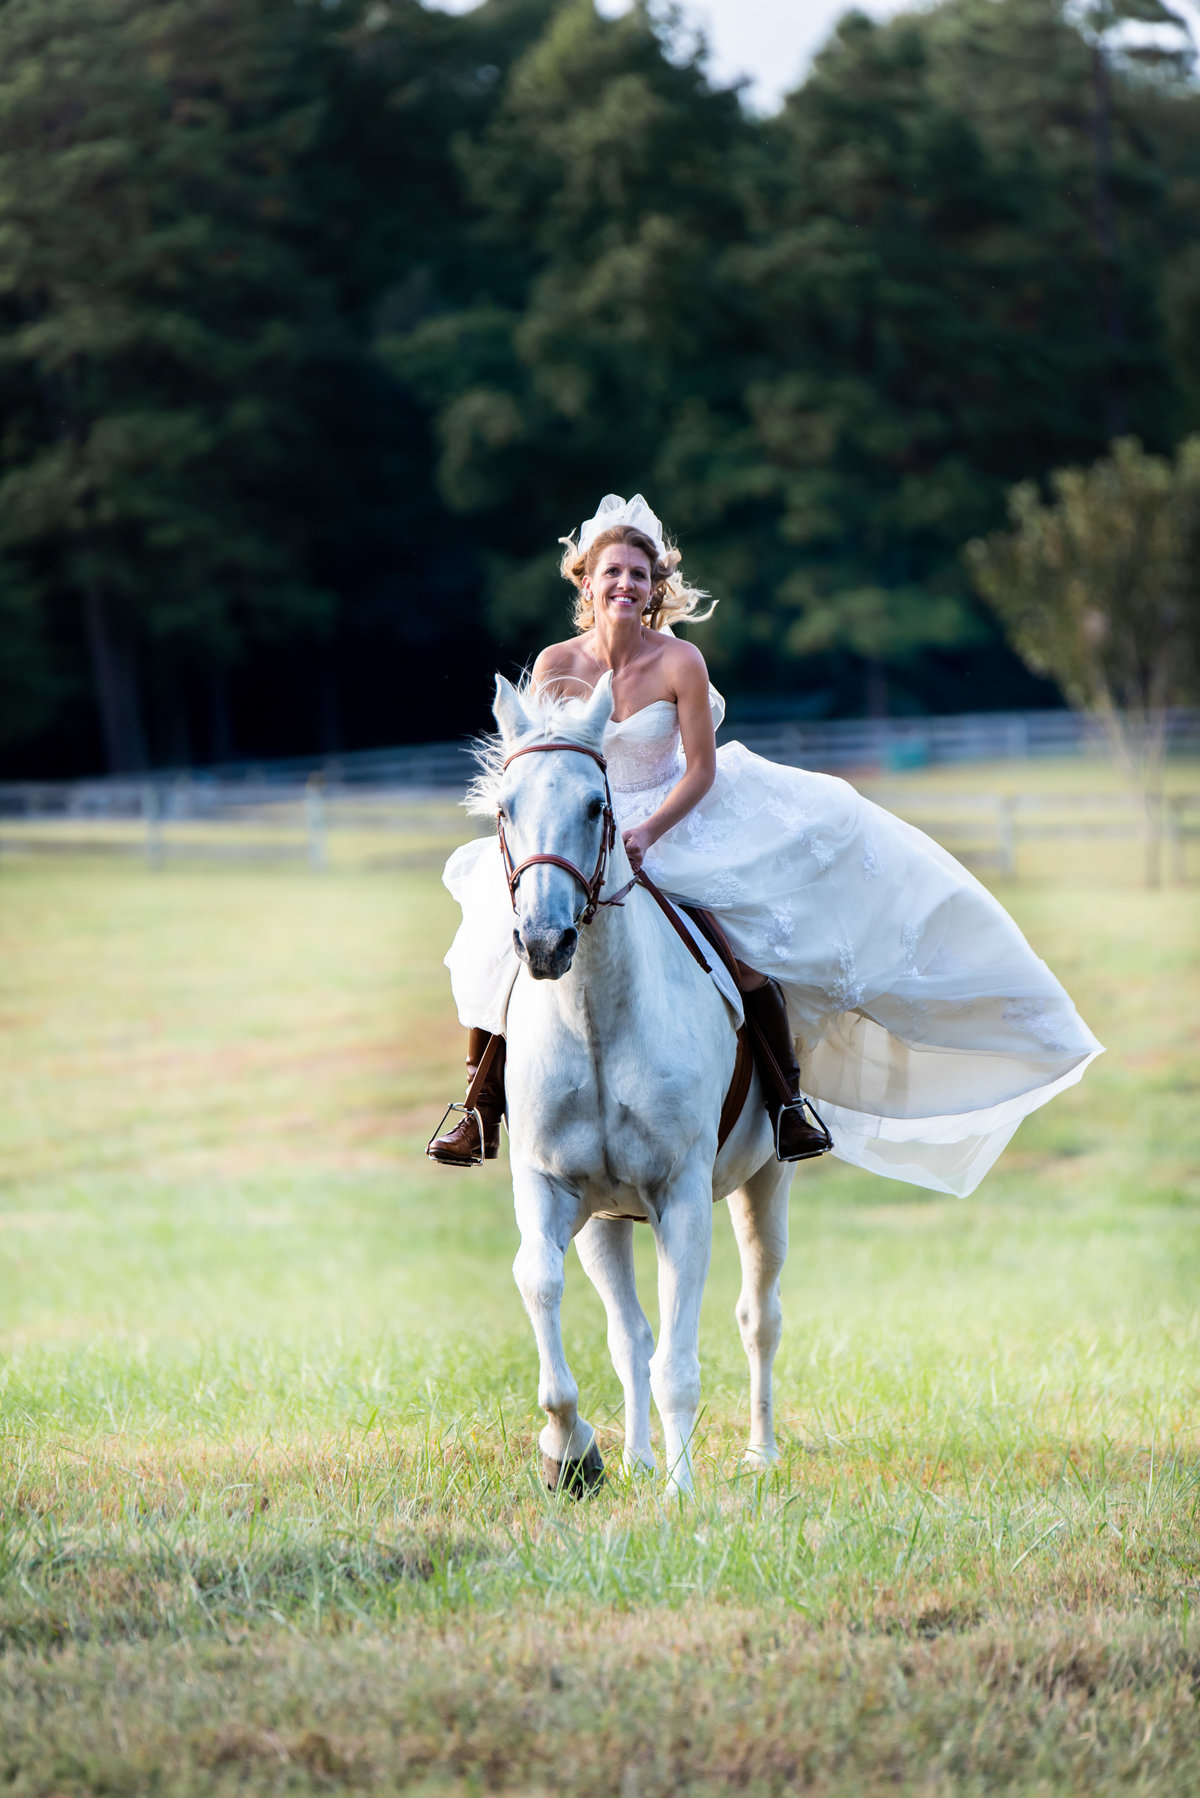 Bride galloping on horse.  Richmond  wedding photographer. Aniko Levai Photography.